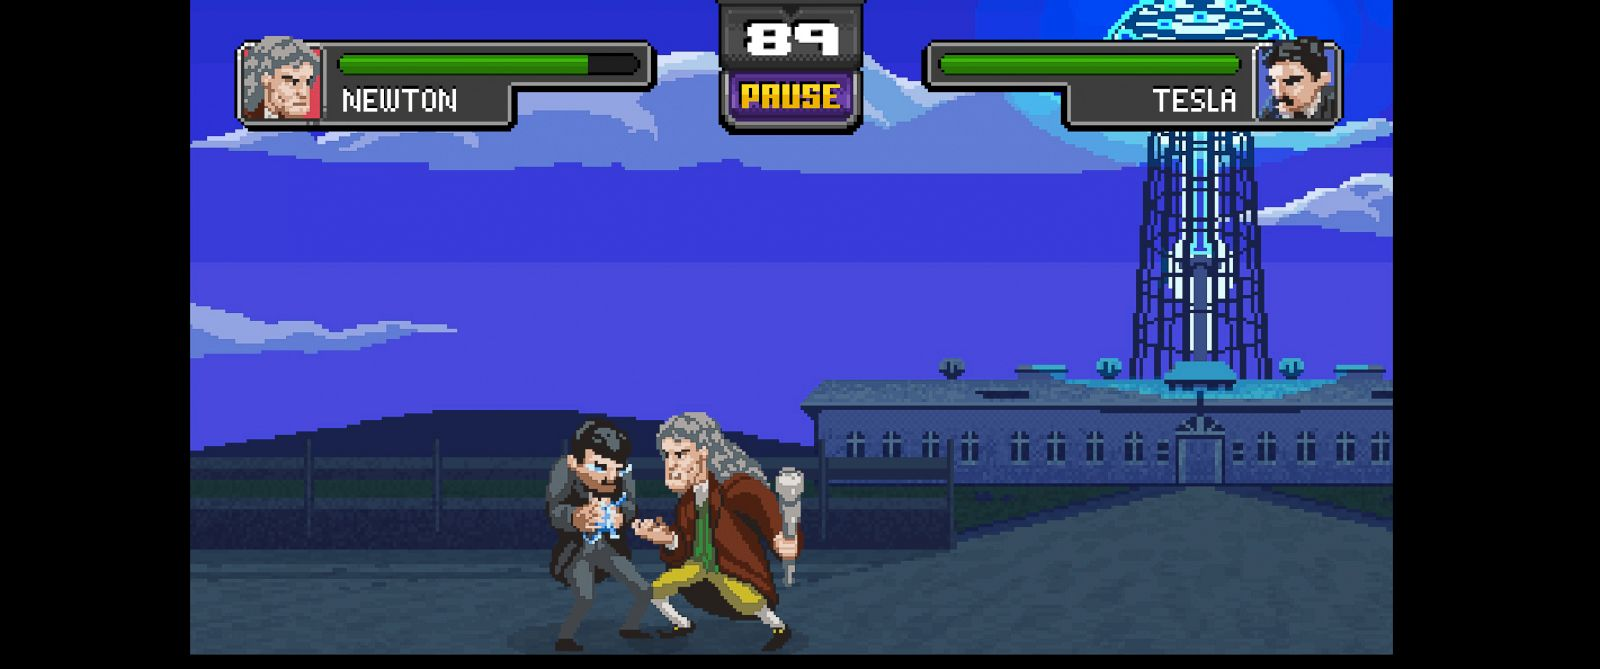 PHOTO: Science Kombat is a web based game that pits some of historys greatest minds against each other.